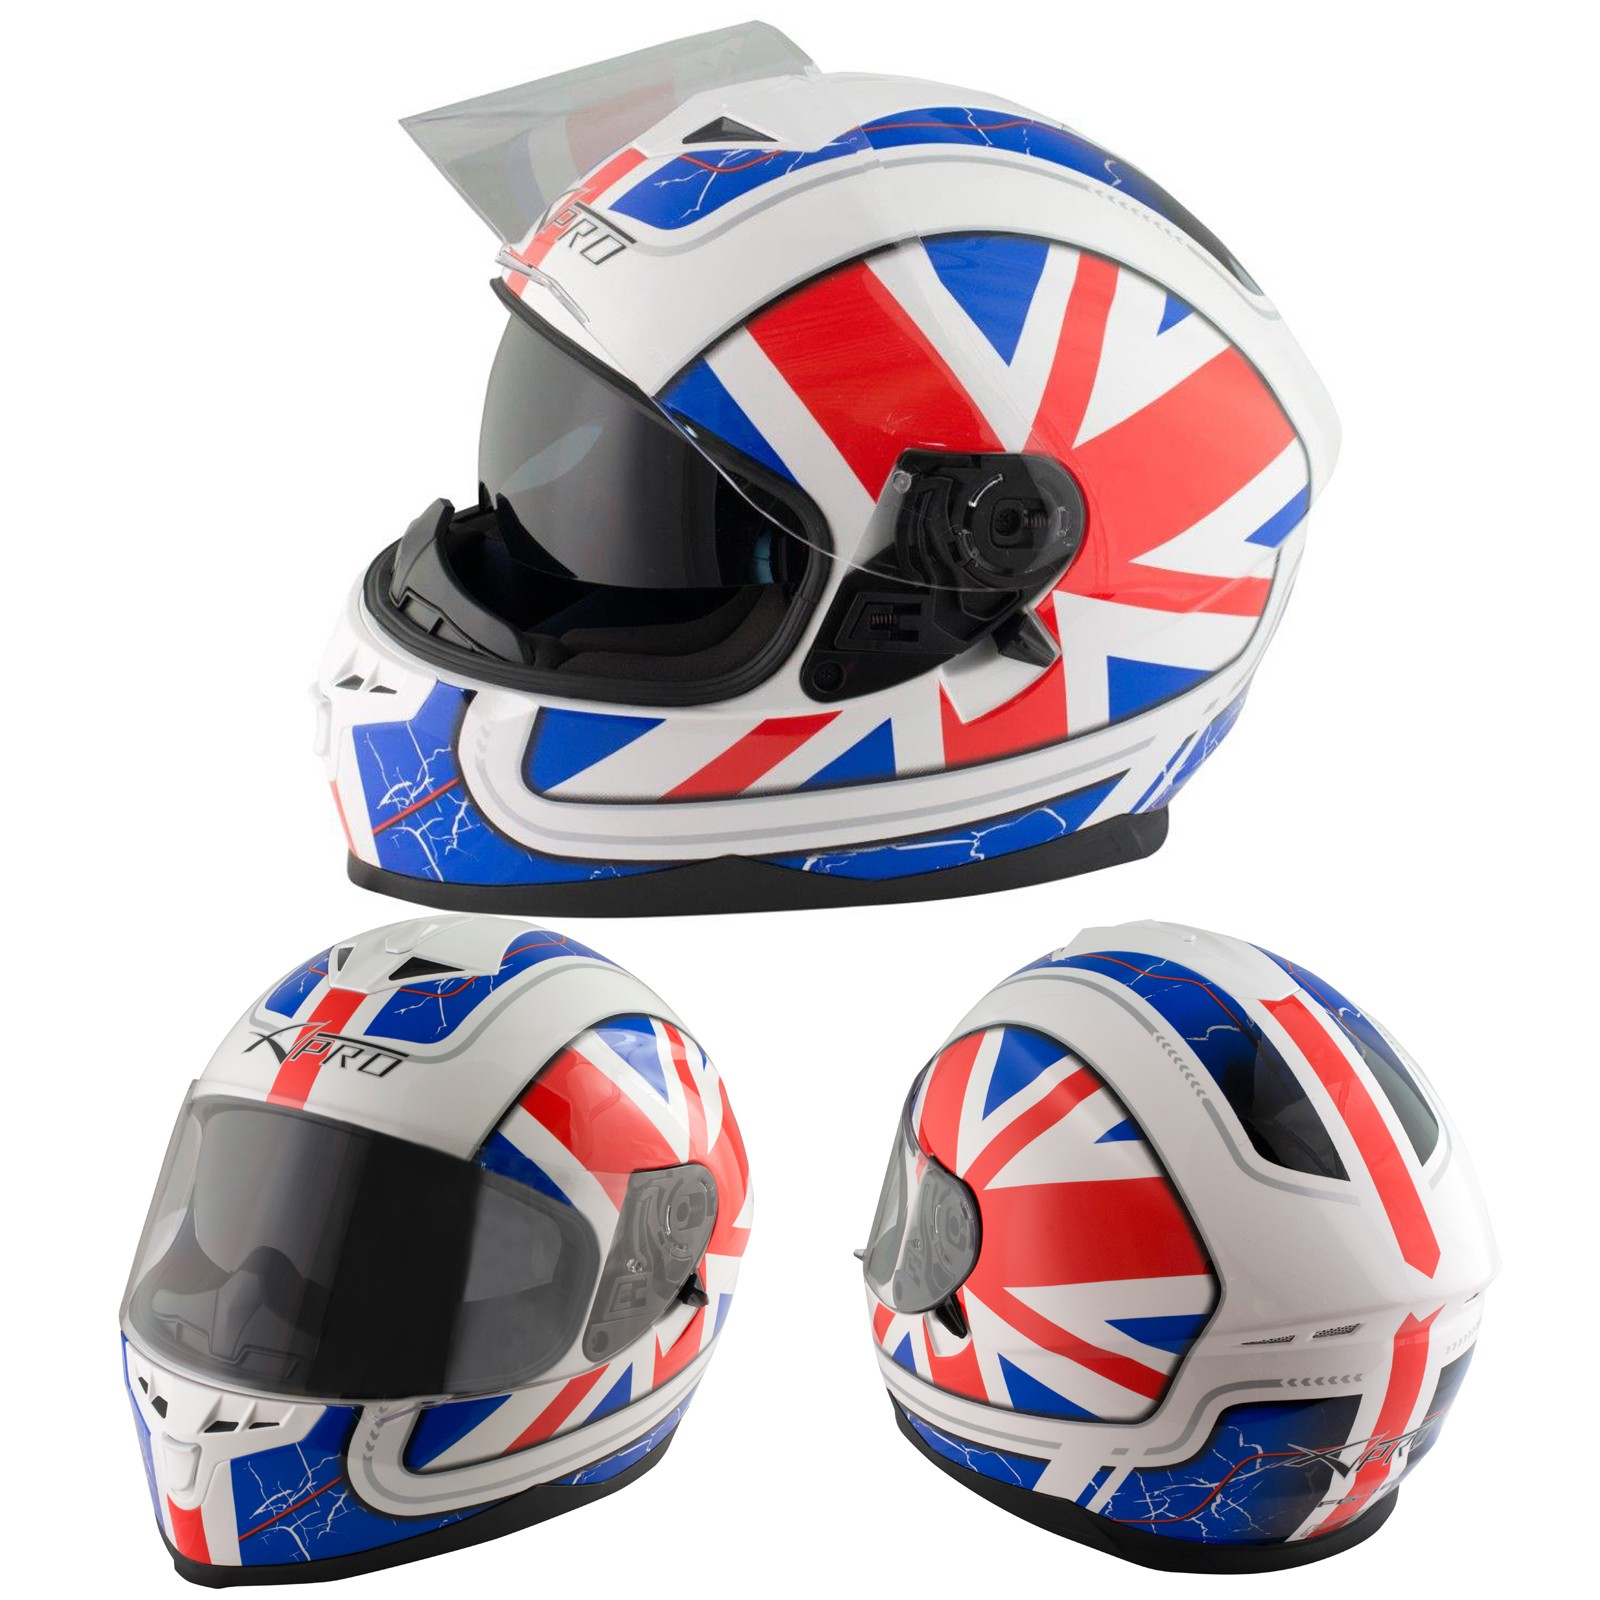 Fg A Pro Casco Helmet English Style Bianco White Rosso Red Blu Blue Sonic Moto Config